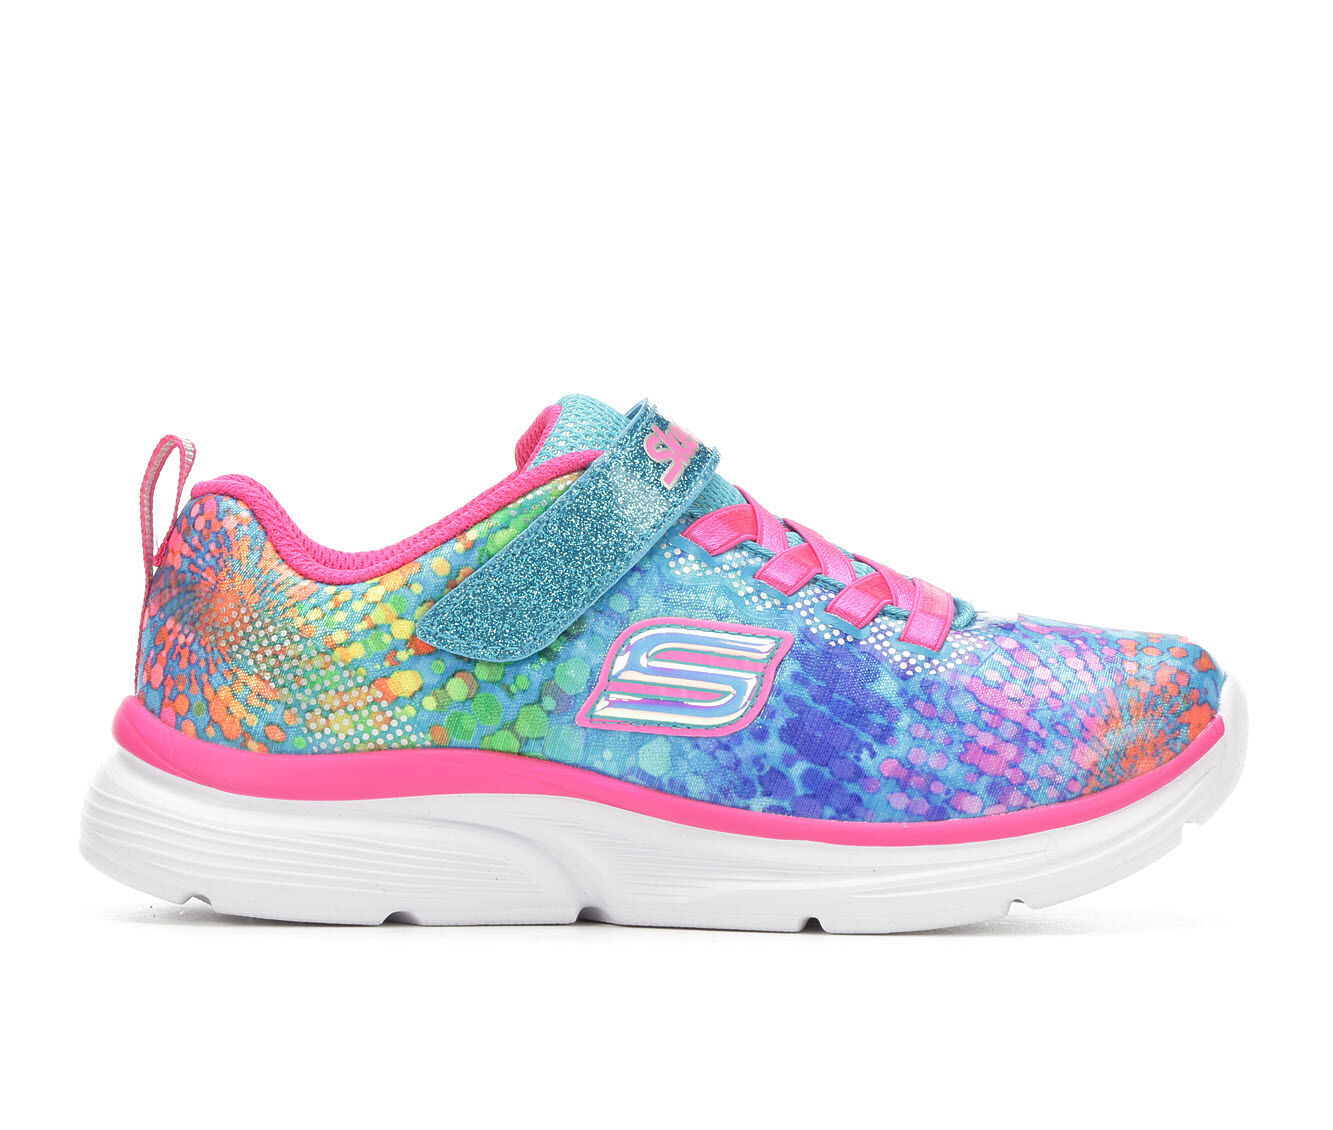 Skechers SneakersShoe SneakersShoe And Shoes Shoes Skechers And Carnival Carnival kwO8Xn0P